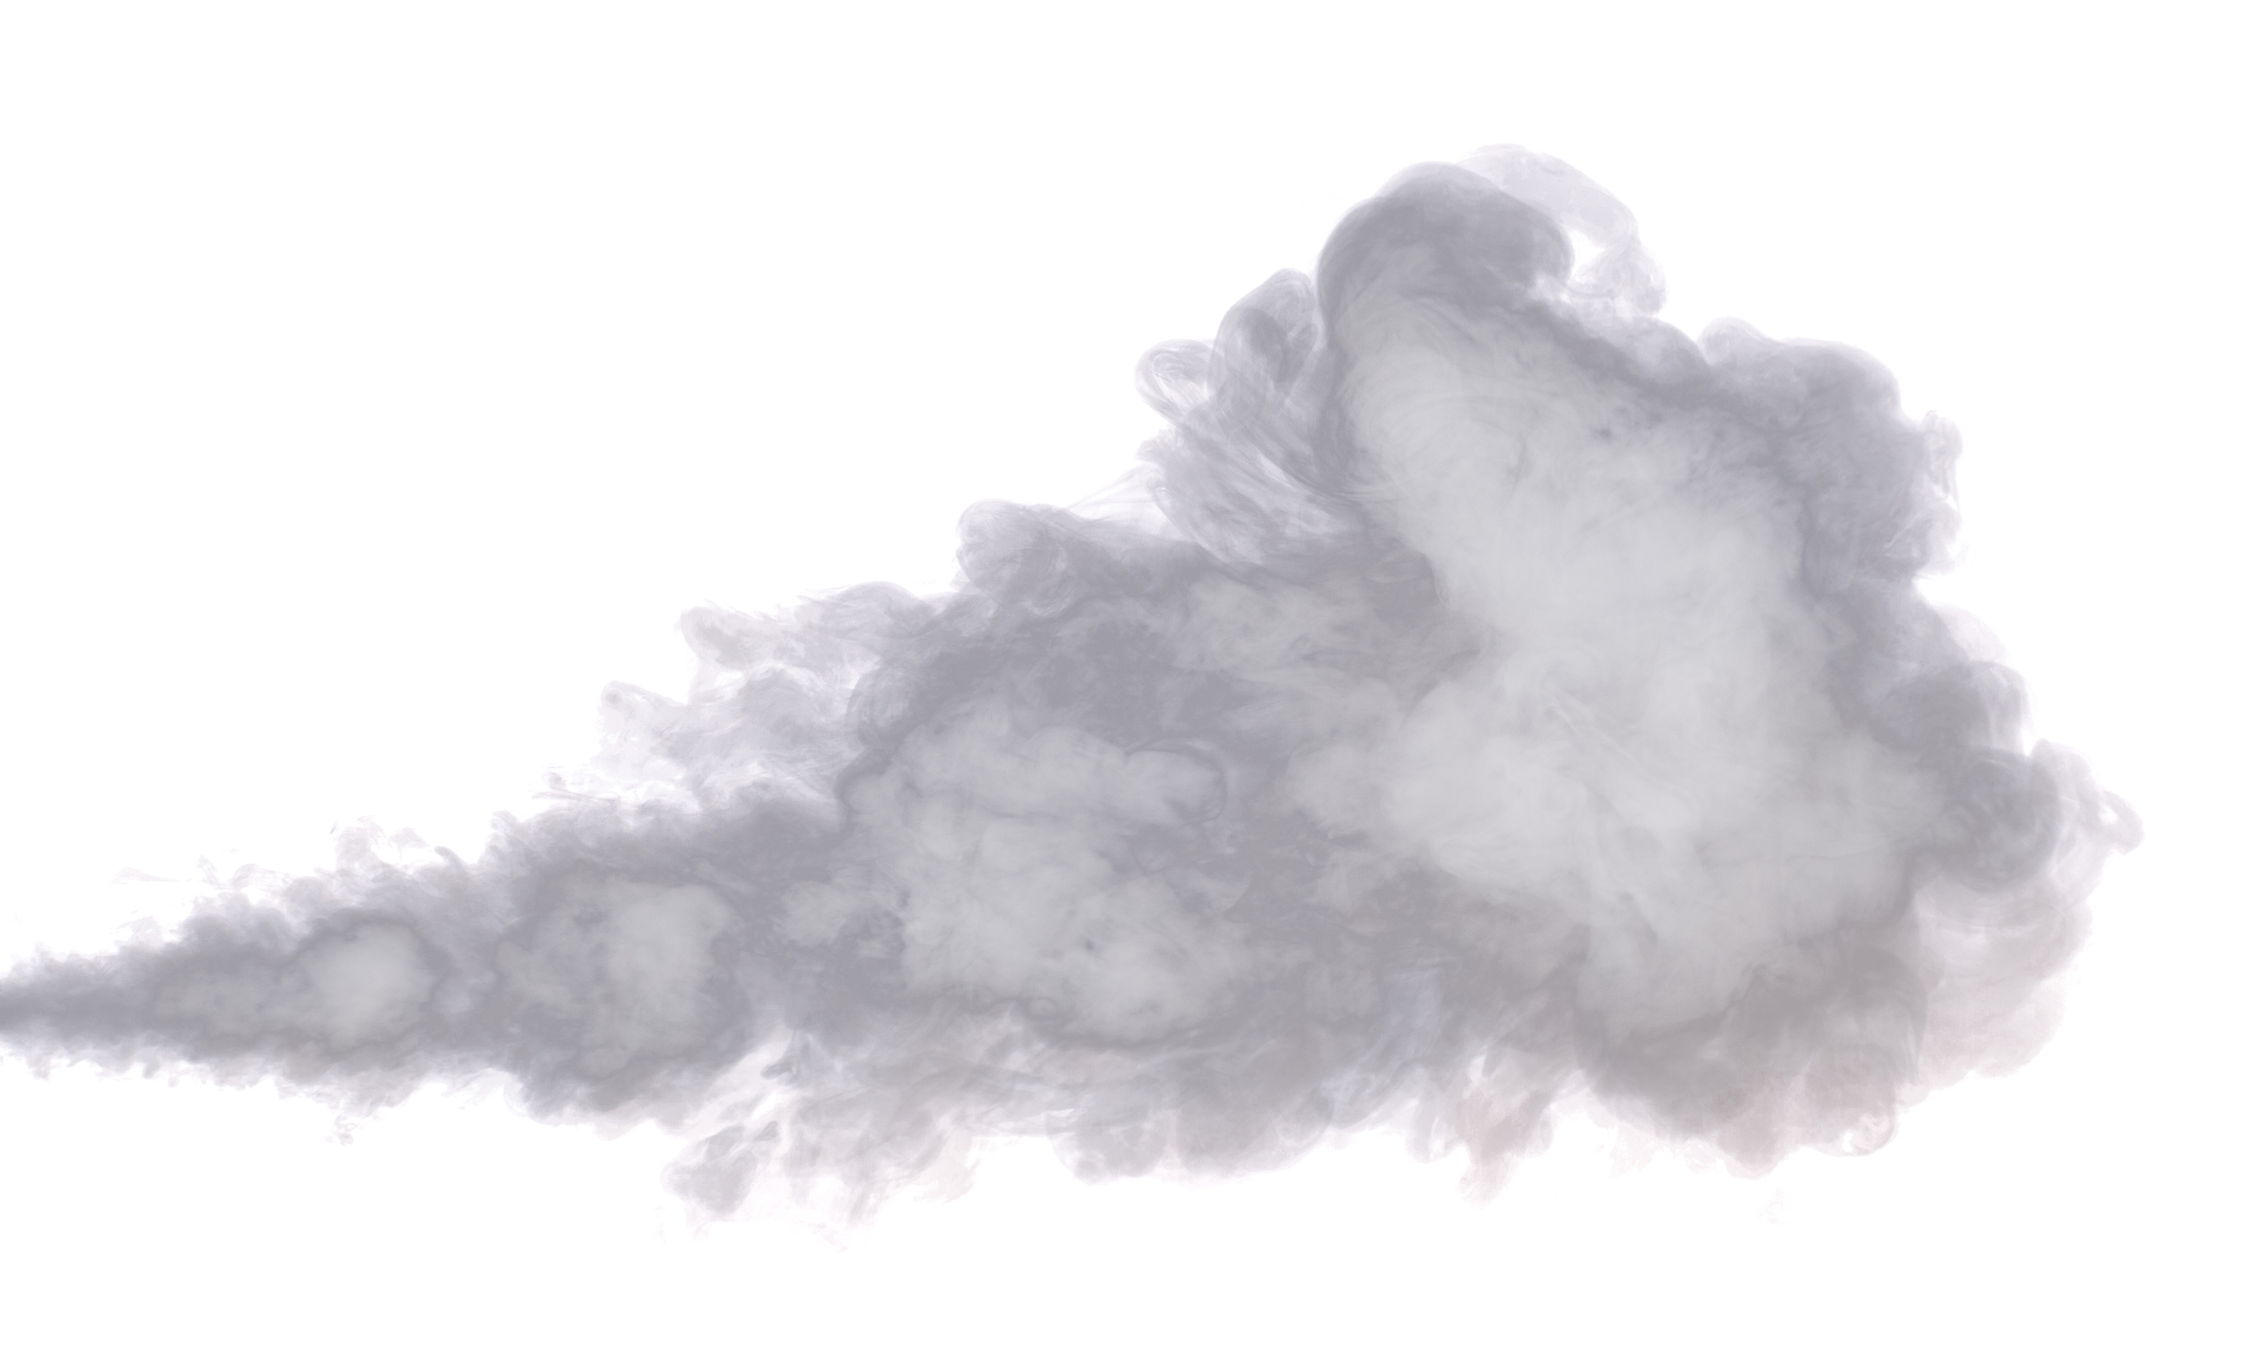 Smoke PNG Transparent Image - PngPix